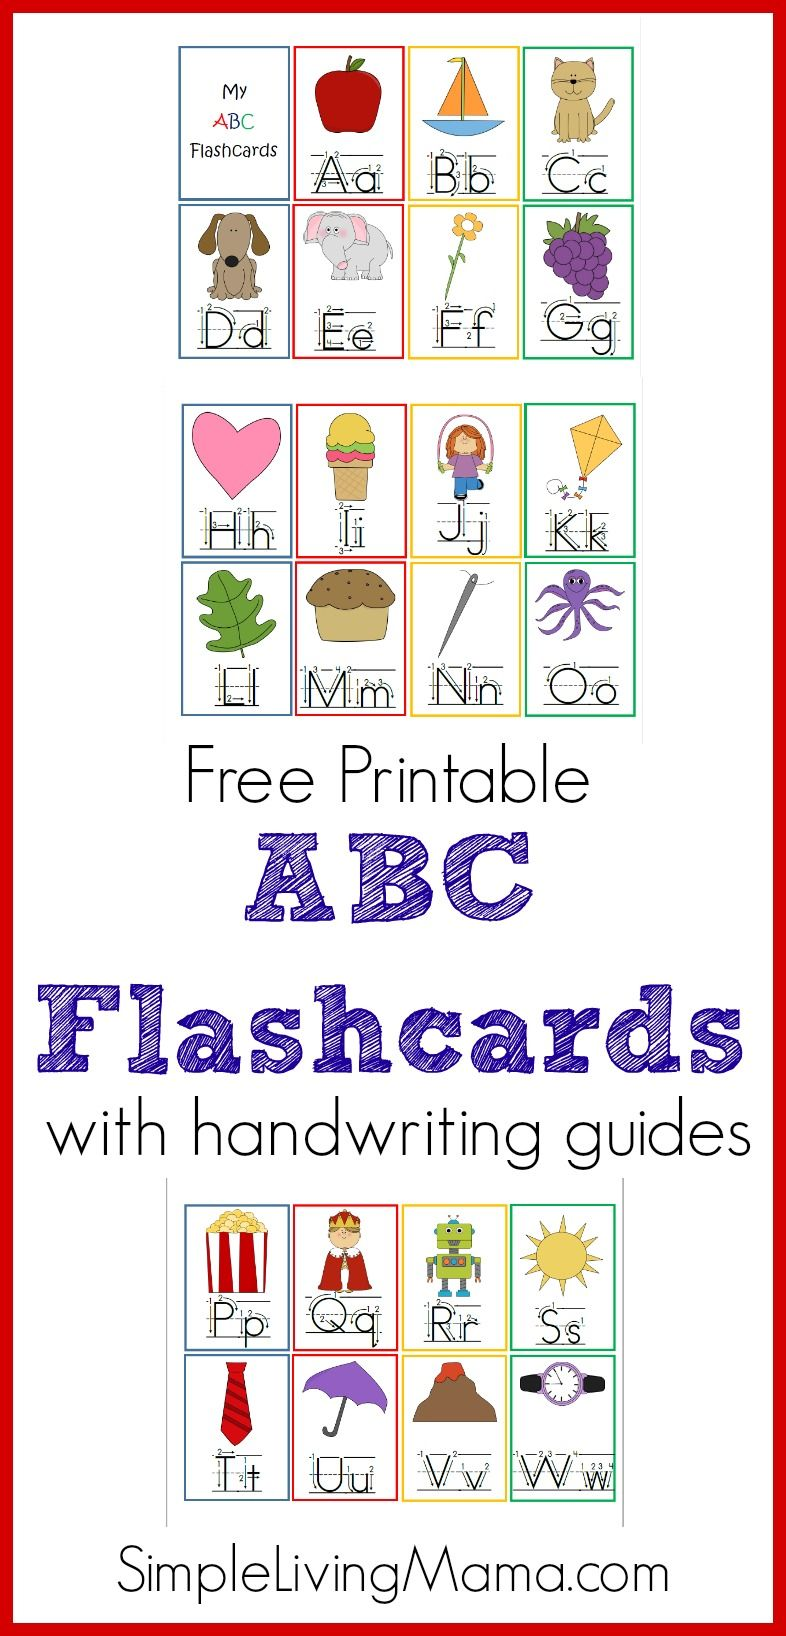 photo regarding Free Printable Abc Flash Cards referred to as Printable ABC Flashcards for Preschoolers The Neighborhood BOARD